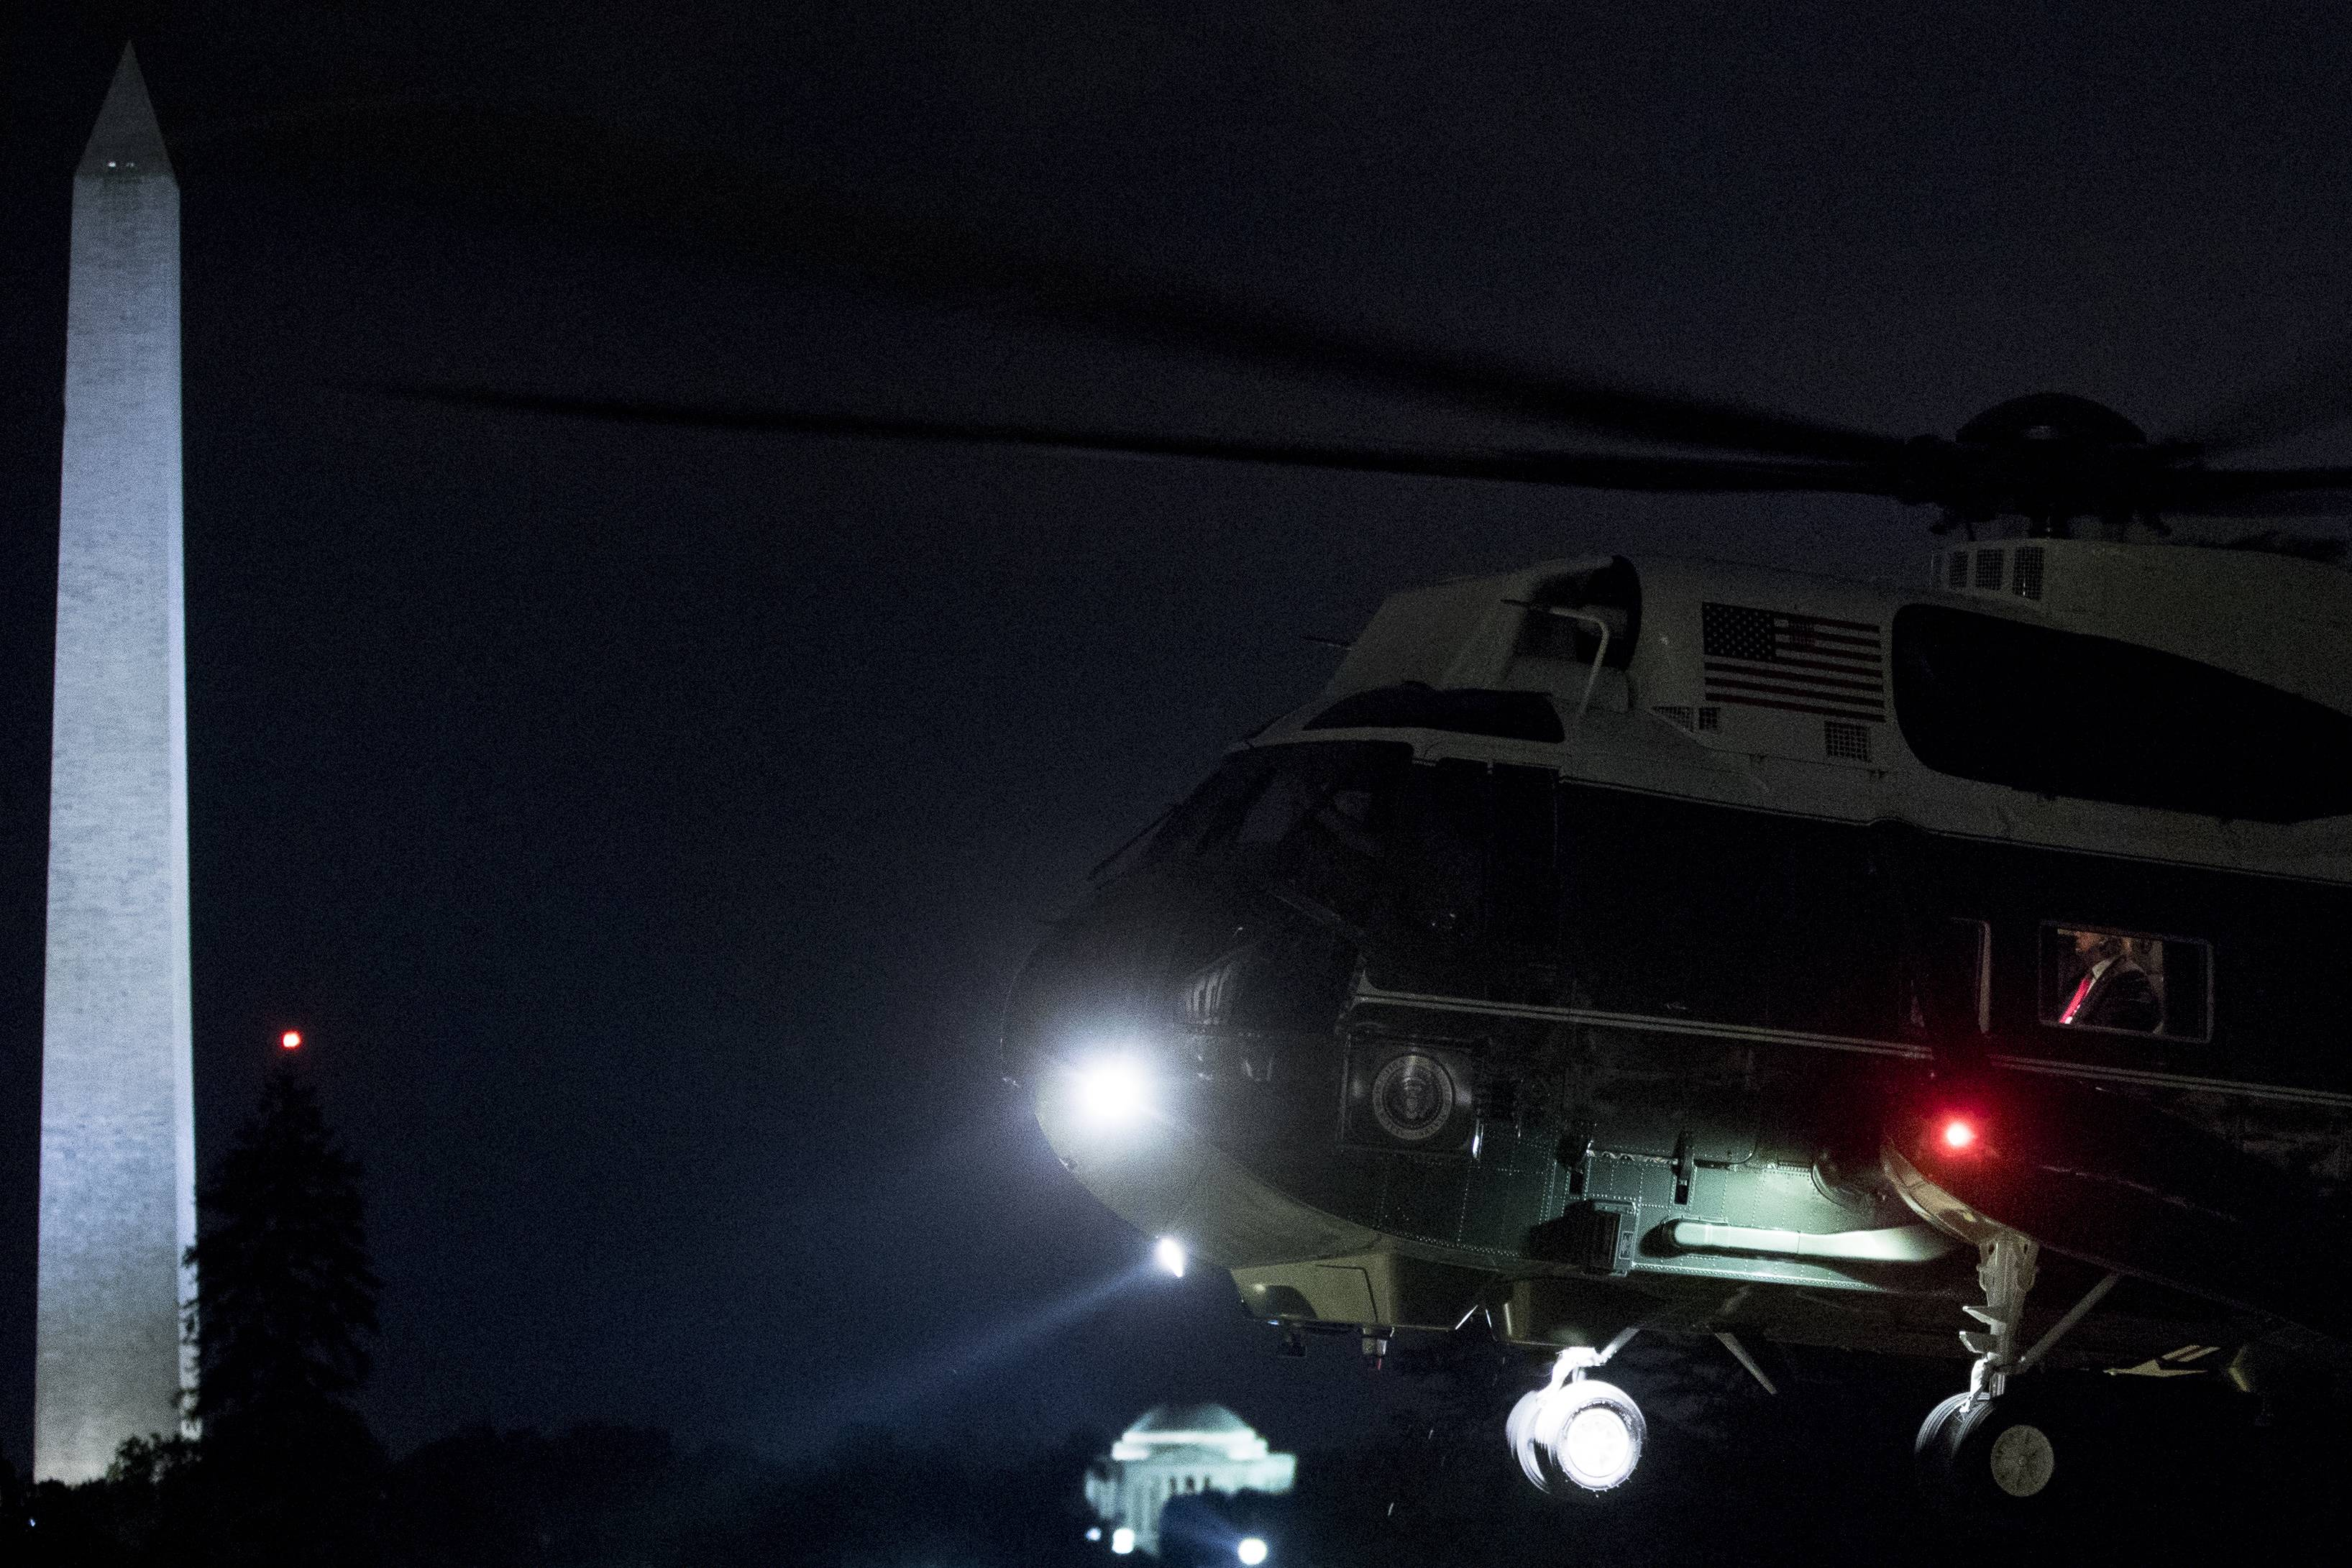 President Donald Trump with his red tie is visible in the window of Marine One Monday as it touches down on the South Lawn of the White House in Washington.